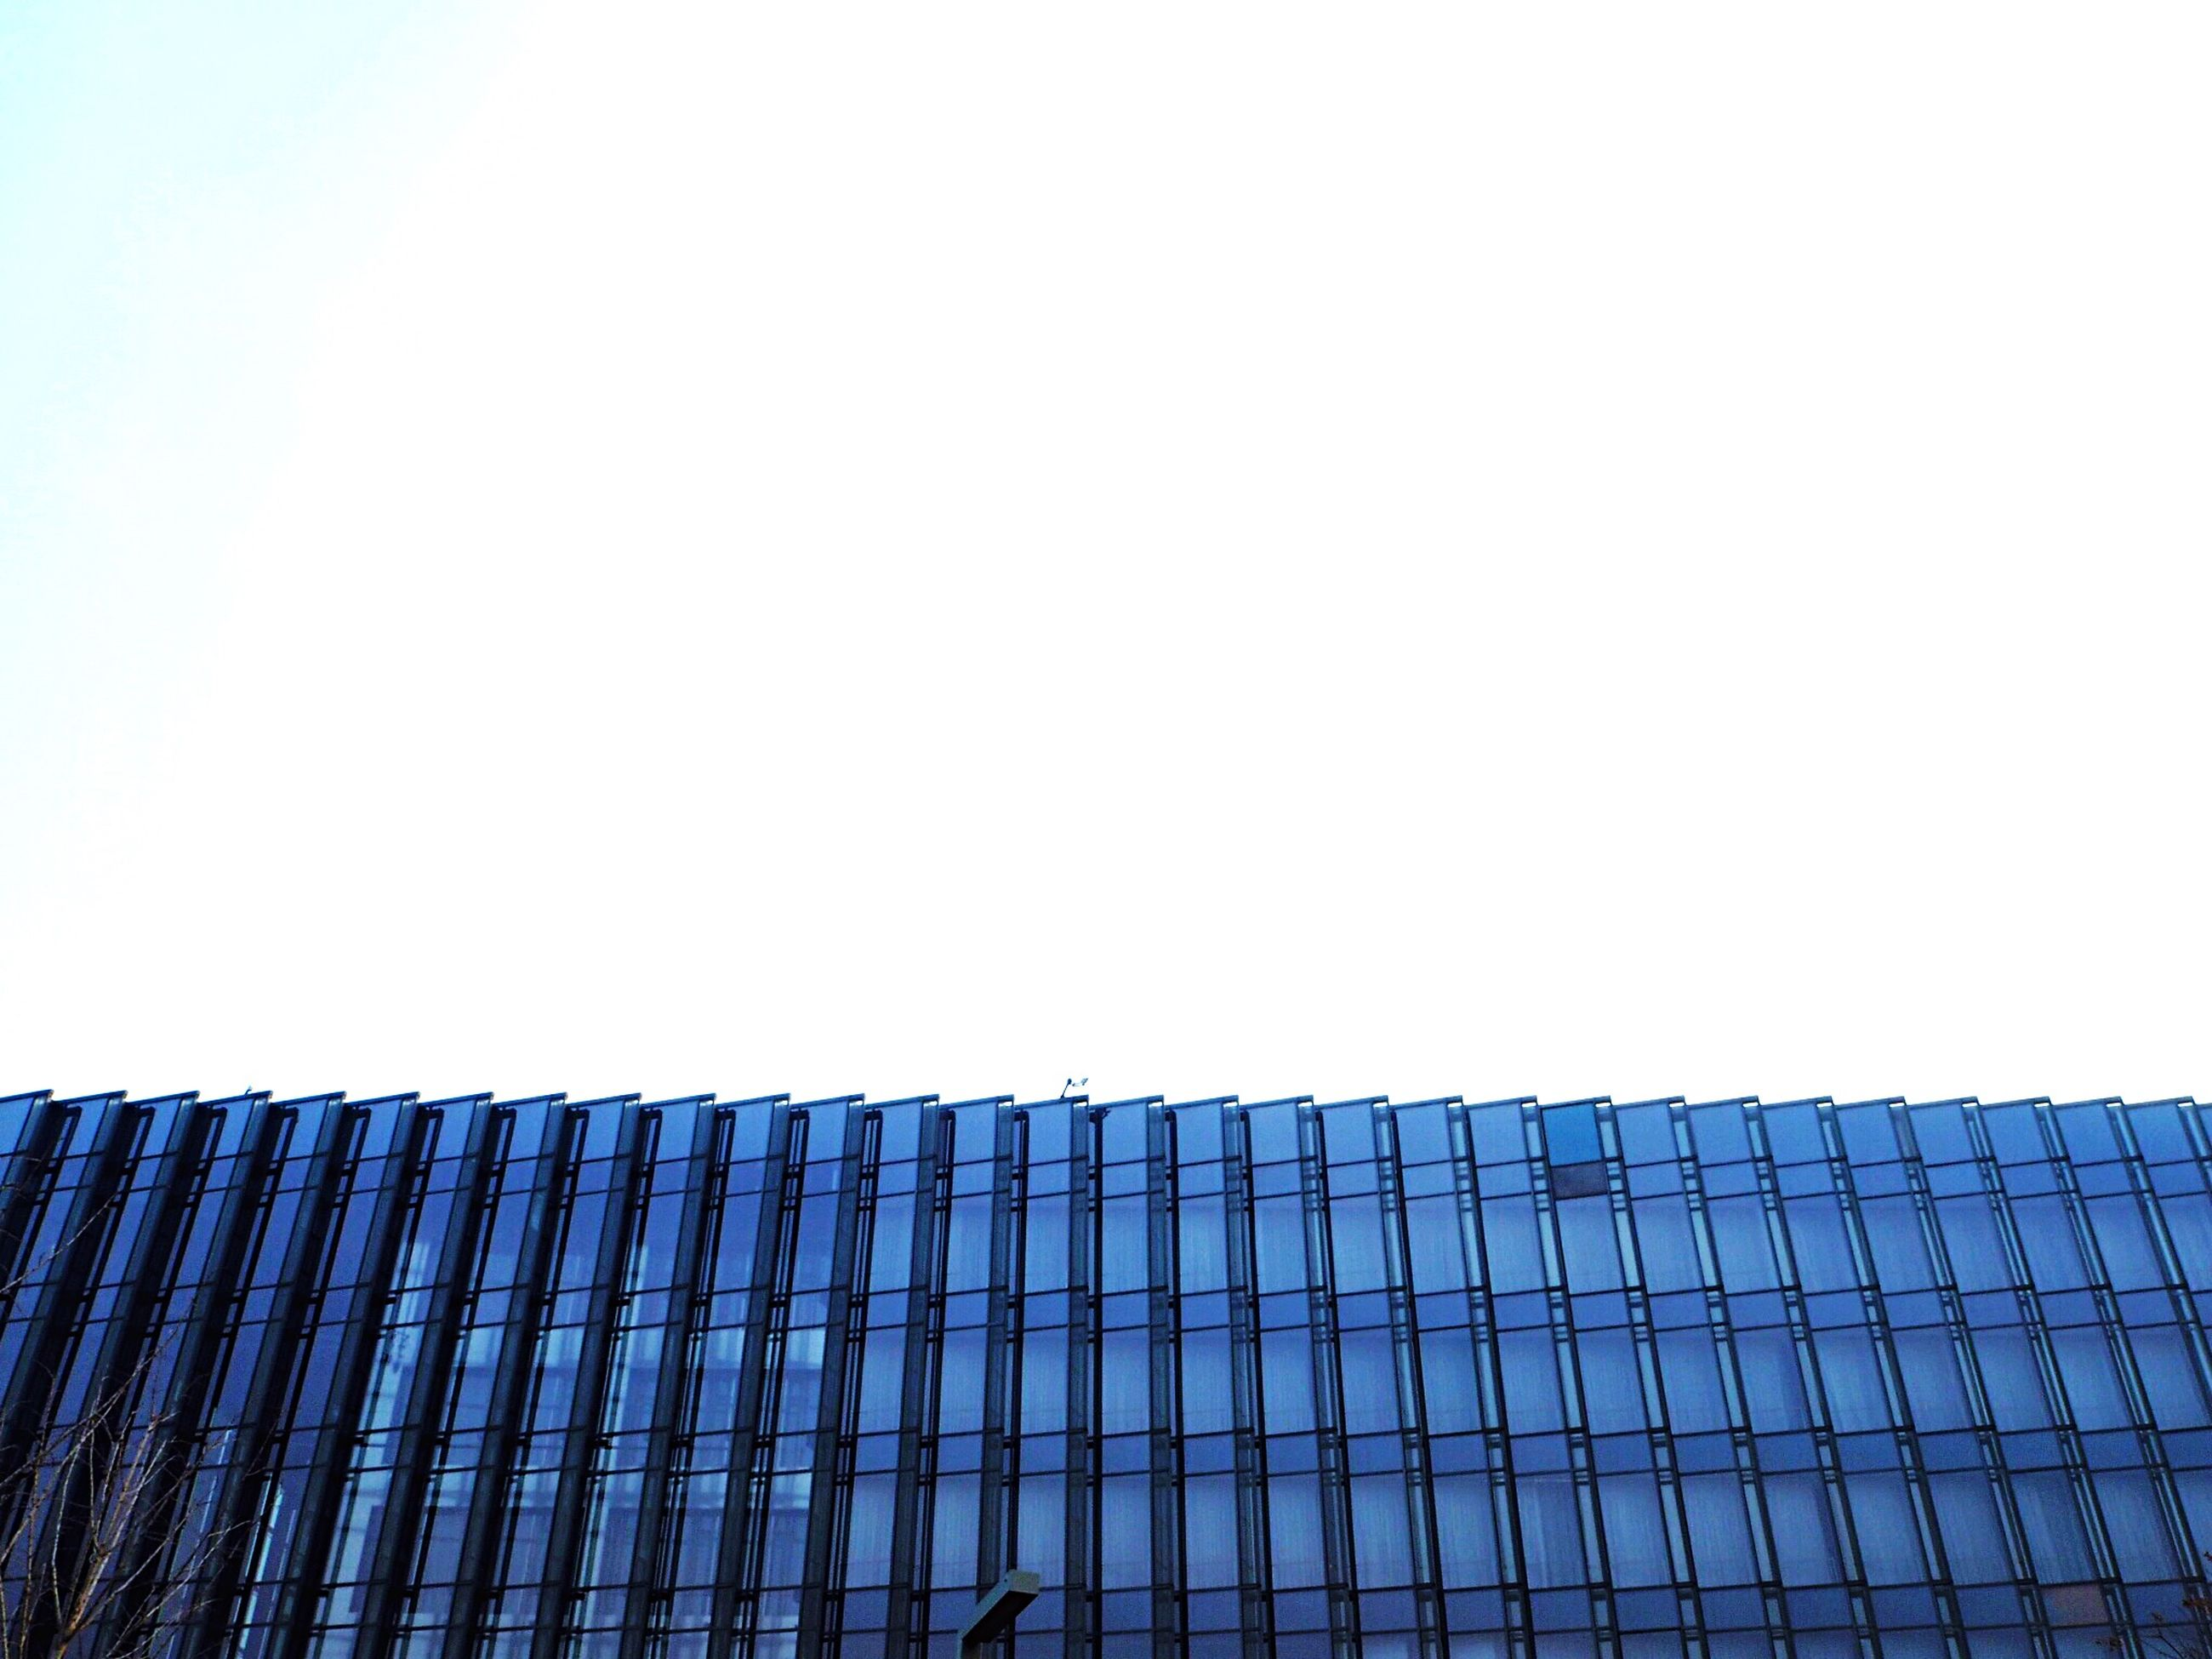 architecture, built structure, low angle view, building exterior, clear sky, copy space, modern, pattern, office building, city, building, tall - high, sky, skyscraper, day, outdoors, blue, no people, tower, repetition